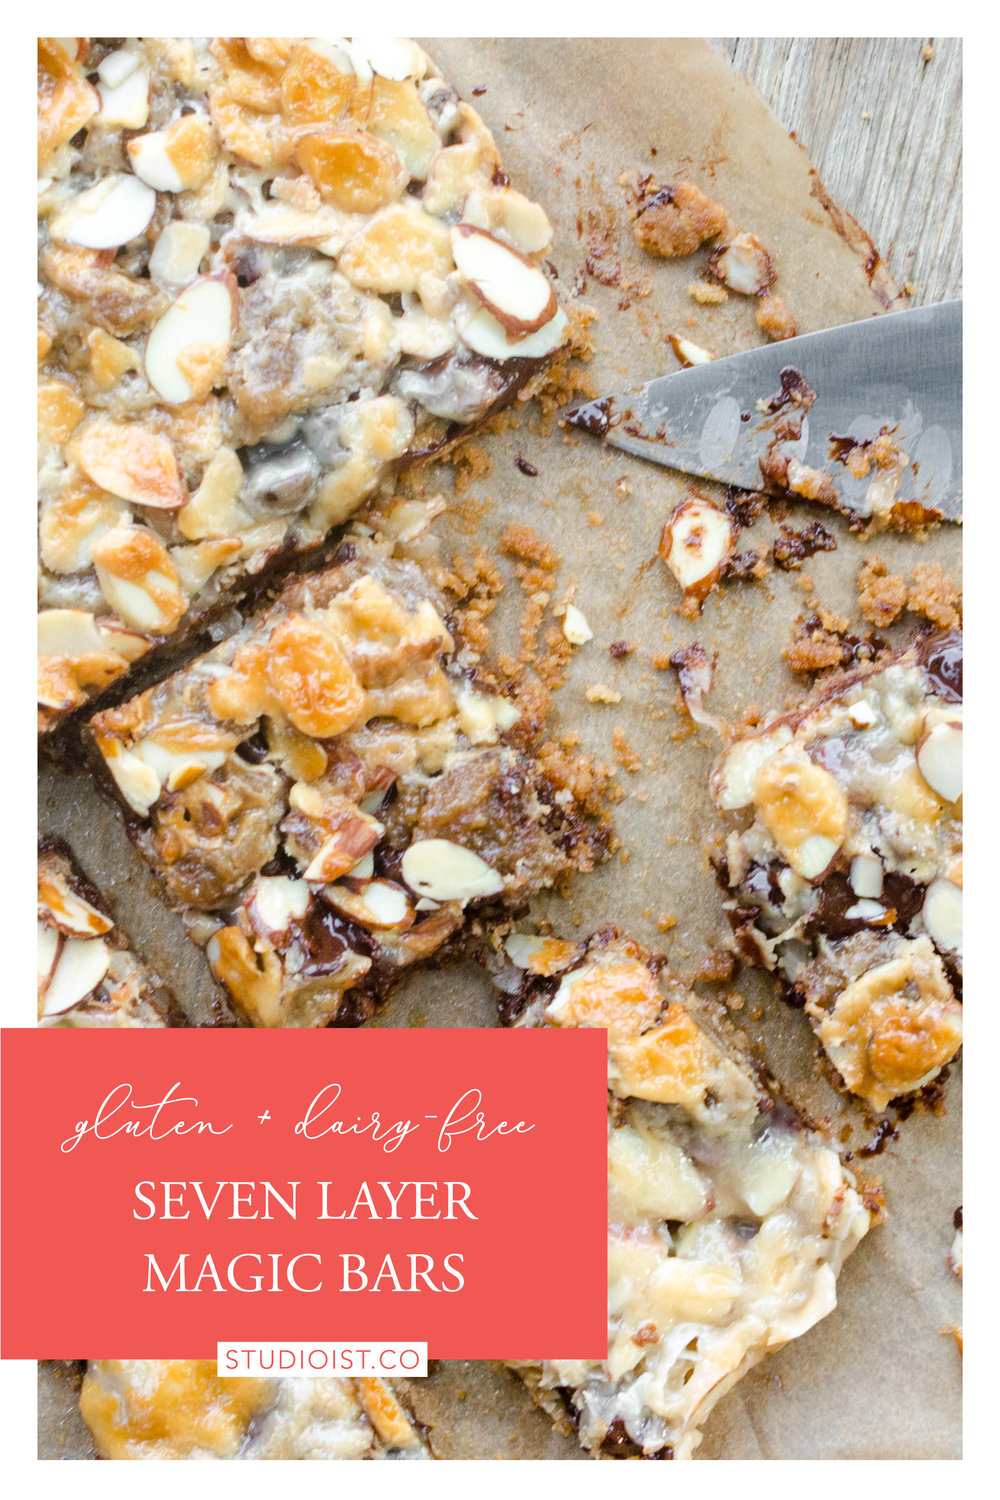 Studioist_Pinterest Design_Magic Bars4.jpg